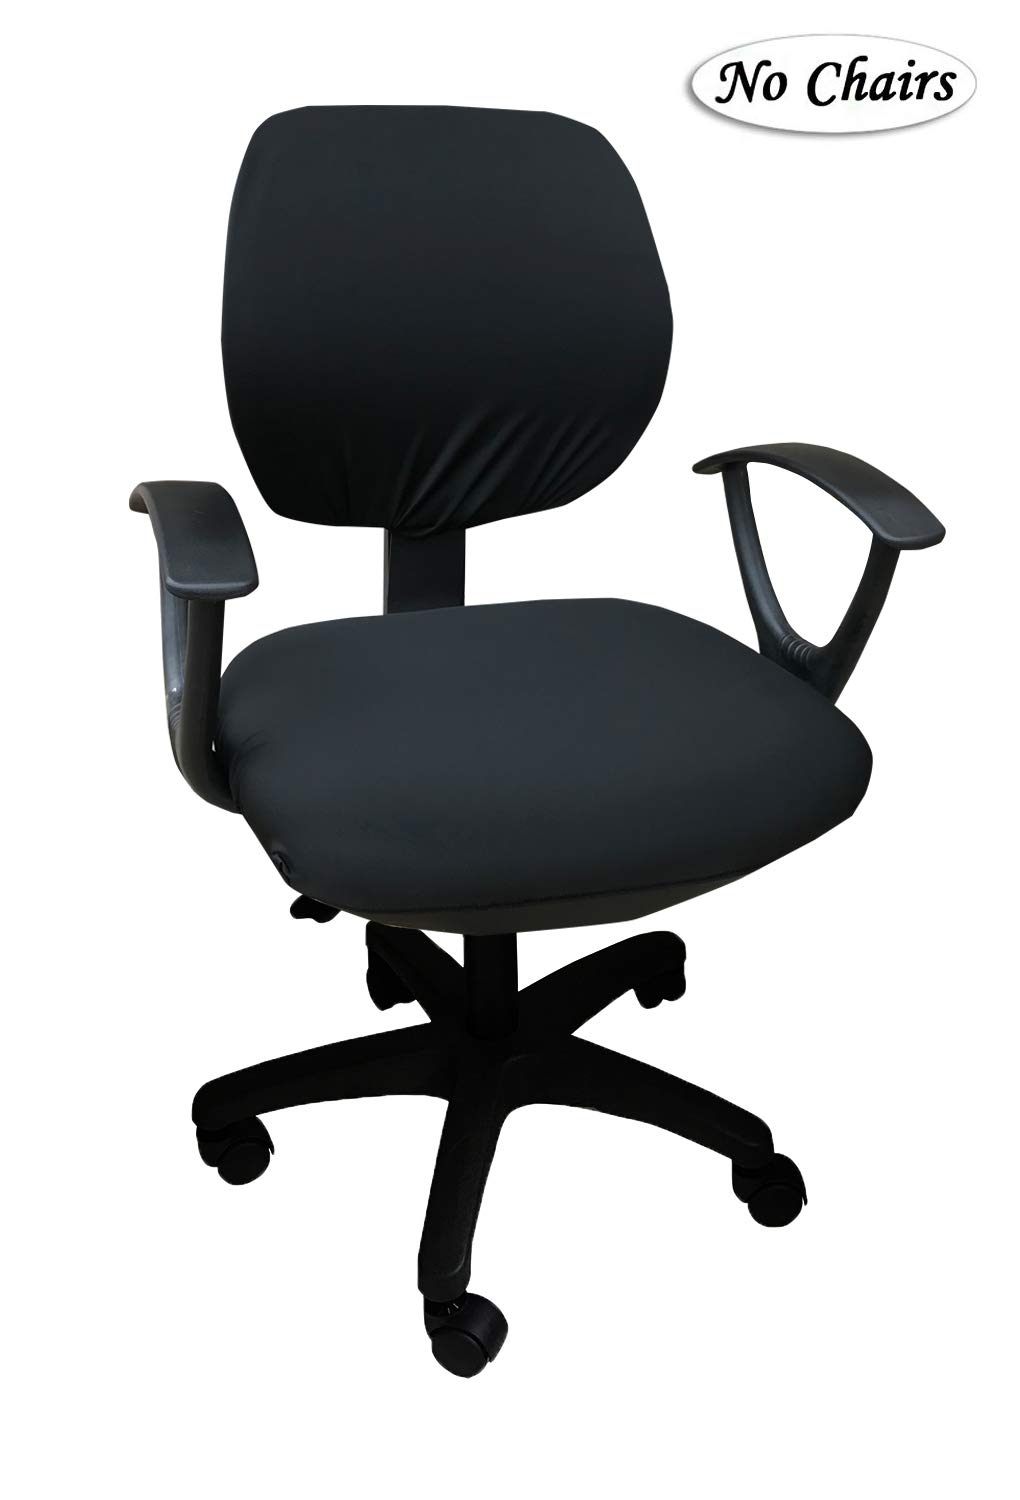 Mocaa Computer Office Chair Covers Universal Stretchable Polyester Washable Rotating Chair Slipcovers Only Chair Covers Color 10 Buy Online In Aruba At Aruba Desertcart Com Productid 145312648